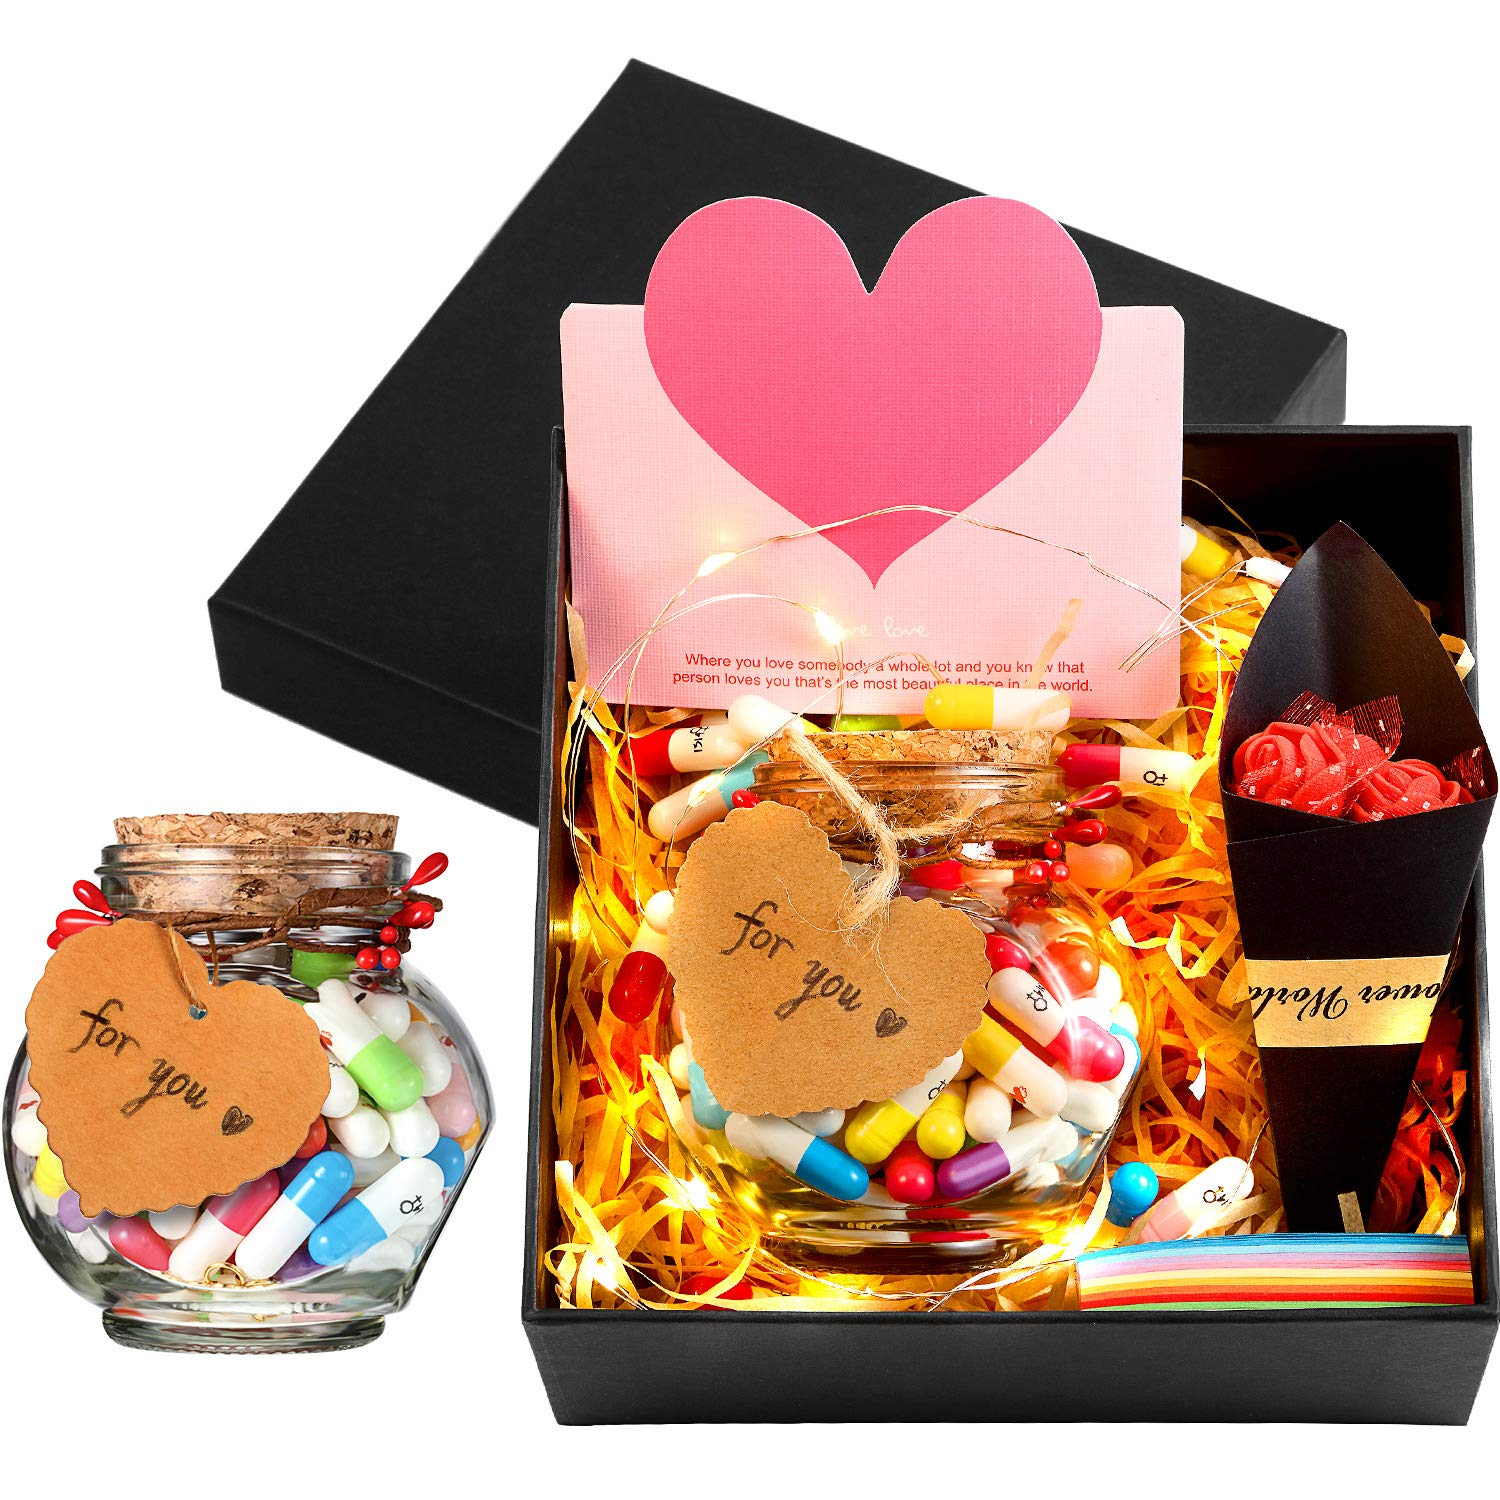 100 Pieces Valentines Day Capsule Letters Message in A Wishing Bottle Friendship Love Half Color Cute Smiling Face Loving Heart Number Birthday Gift